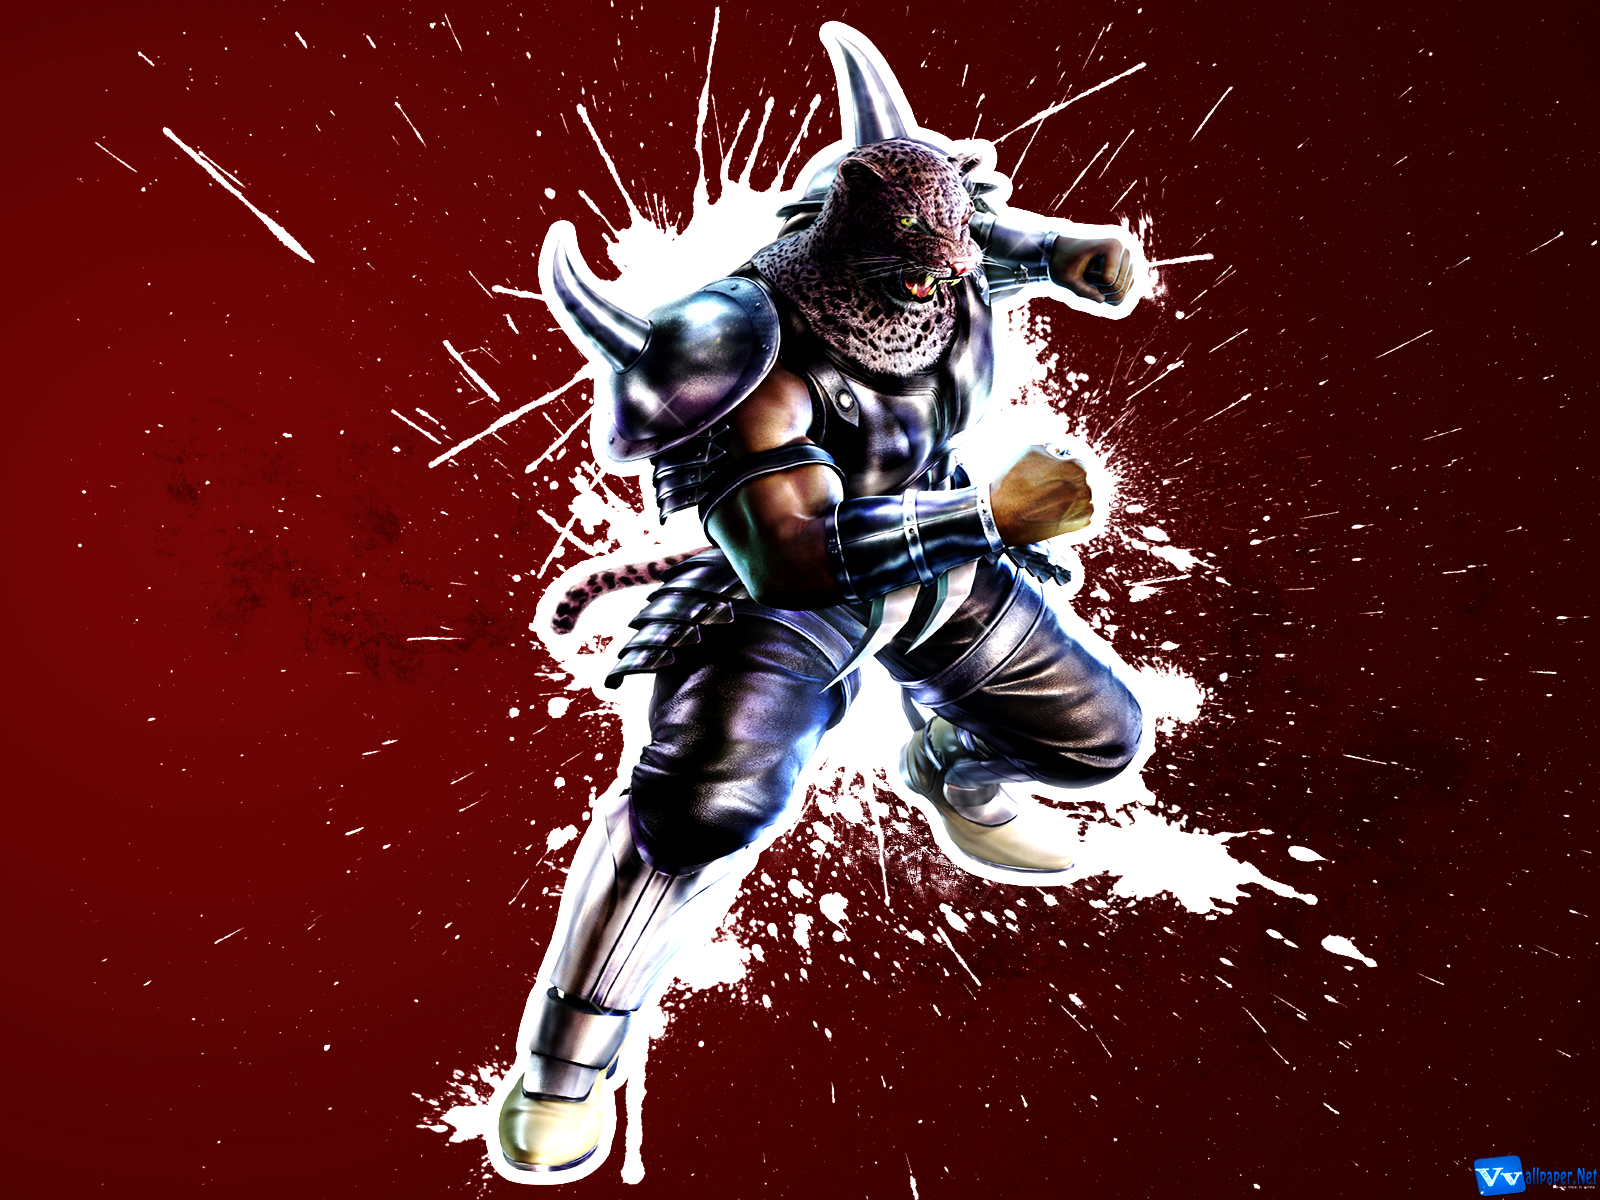 50 Tekken Hd Wallpaper On Wallpapersafari